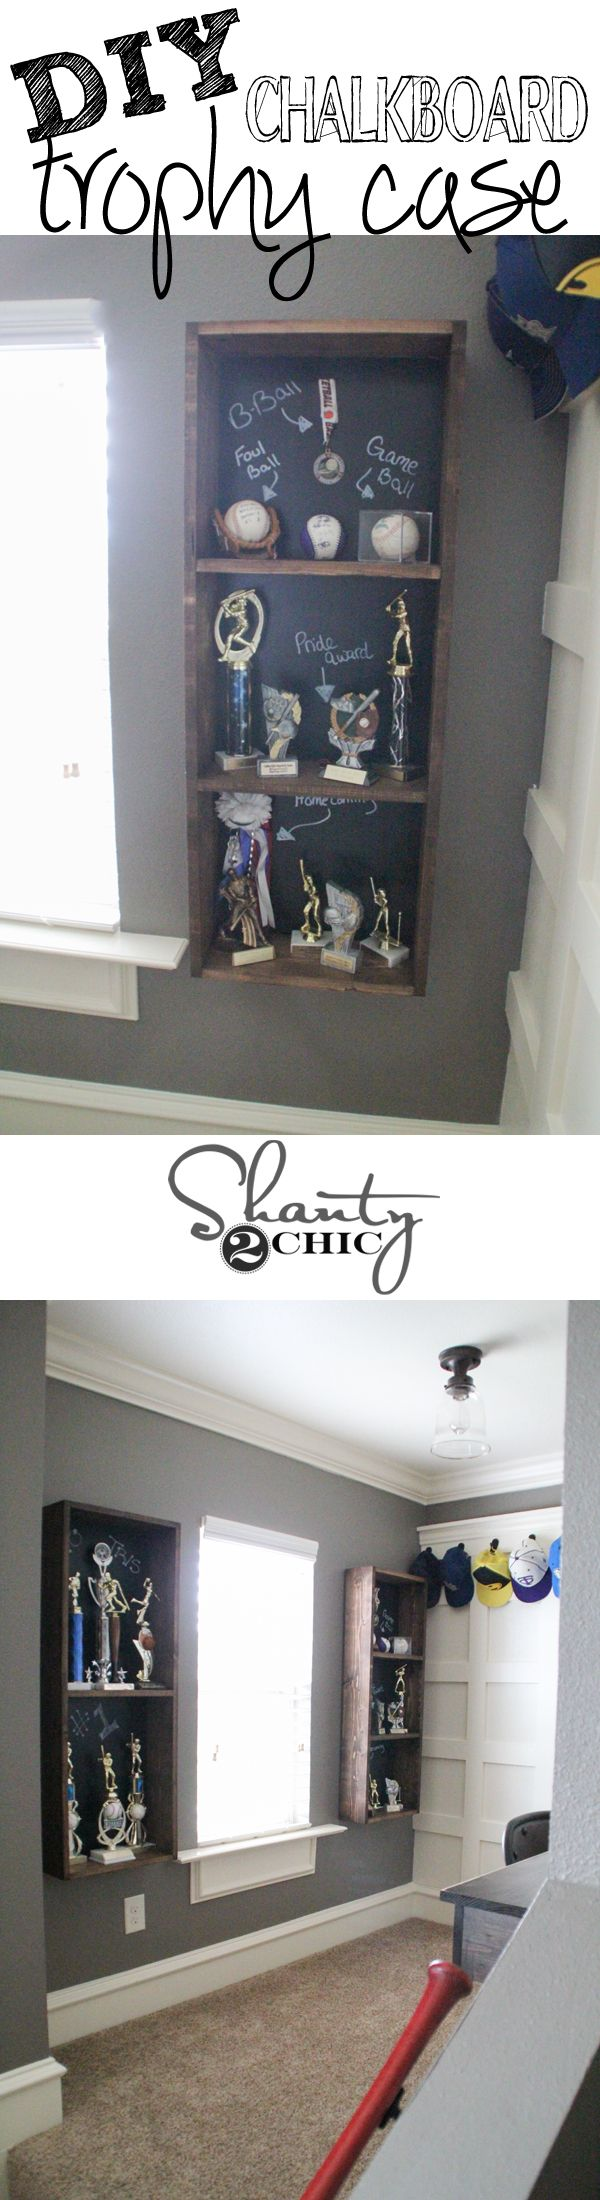 DIY Trophy Case With A Chalkboard Back You Can Write Messages Or Makes Notes For Each My Boys LOVE This